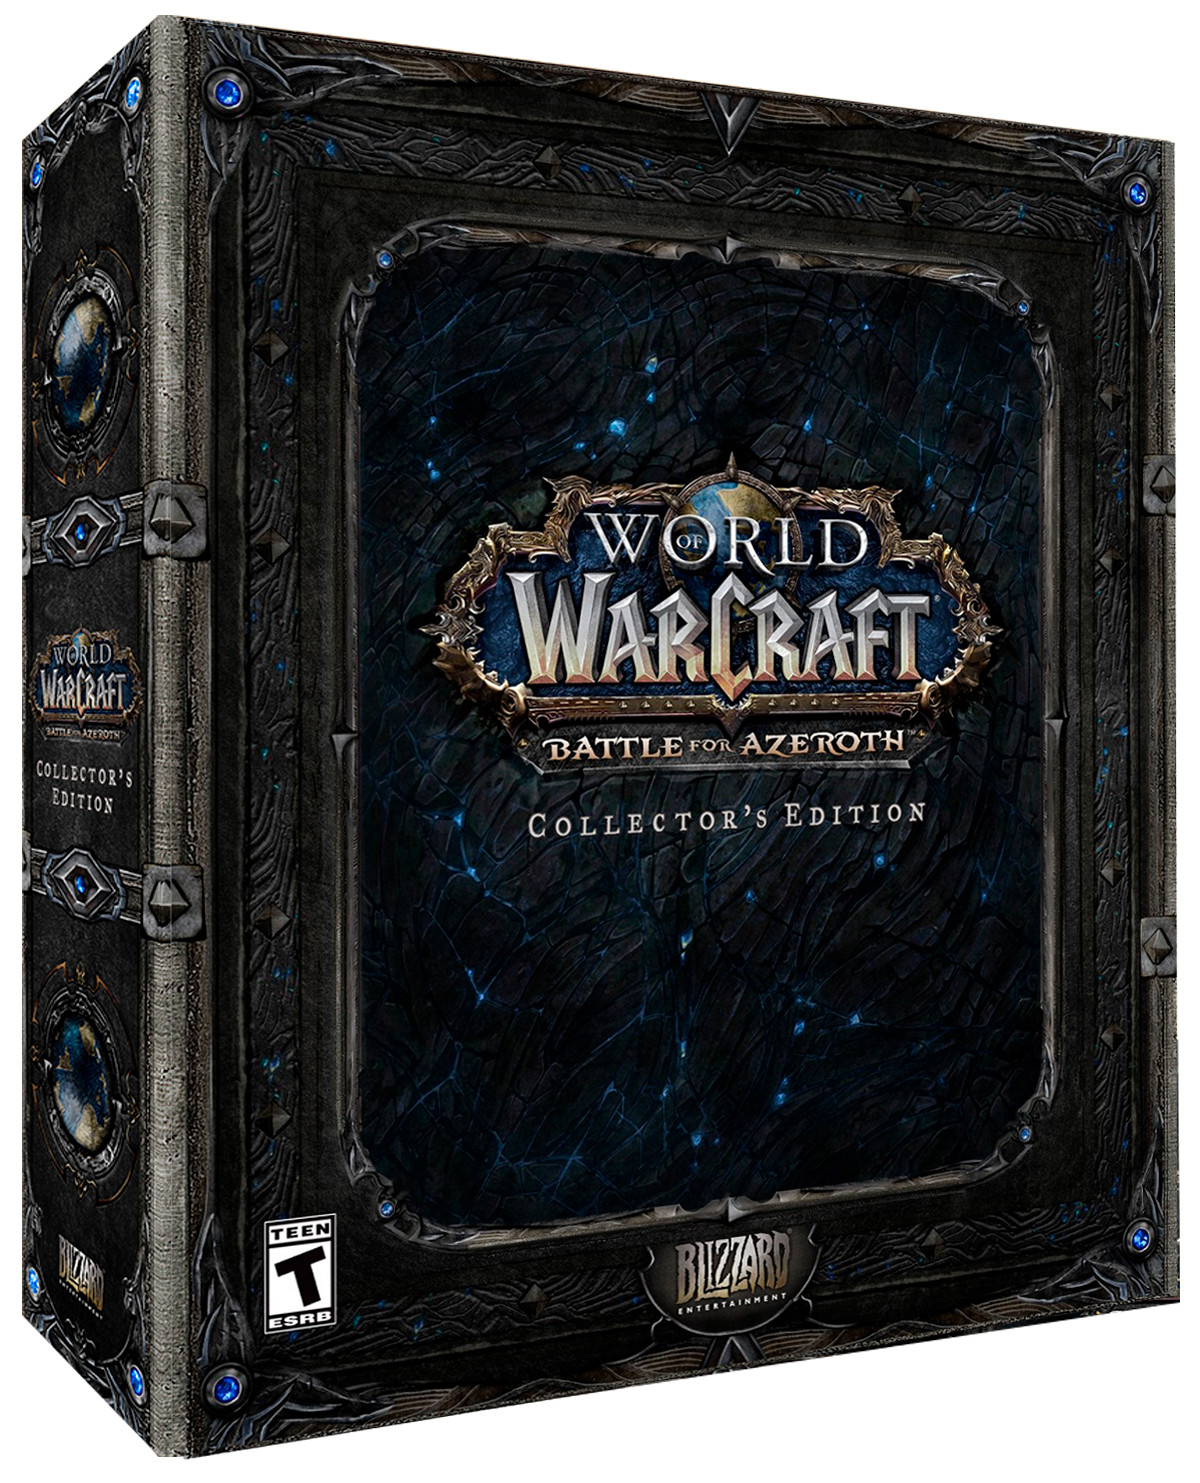 Descargar Libros Warcraft World Of Warcraft Battle For Azeroth Collectors Edition Para Pcs